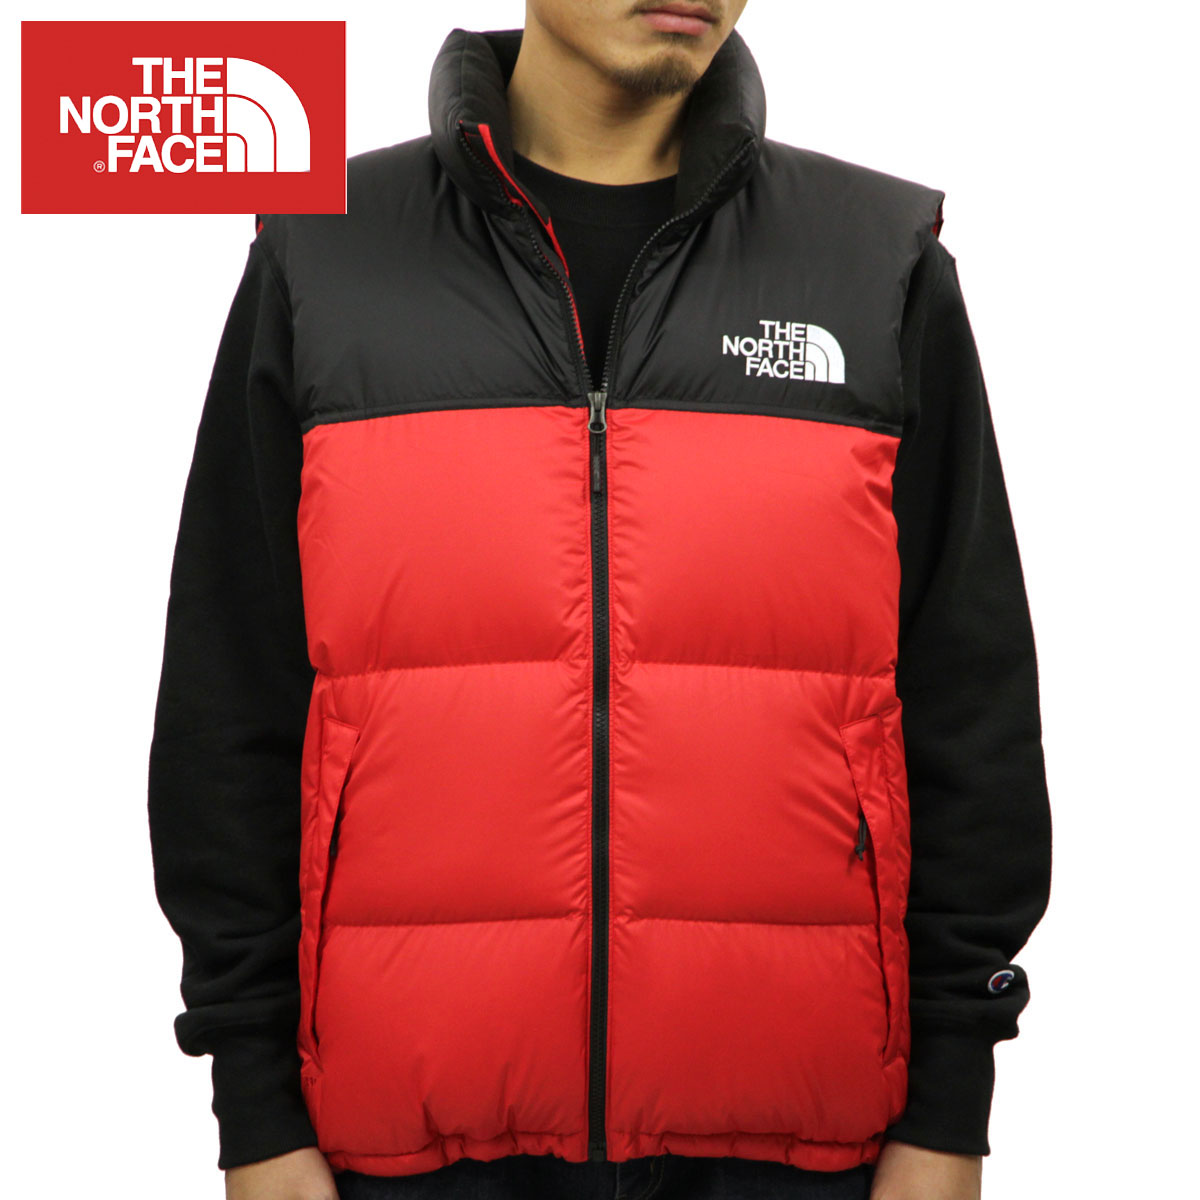 North Face THE NORTH FACE regular article men outer best TNF NOVELTY NUPTSE VEST TNF BLACKTNF RED